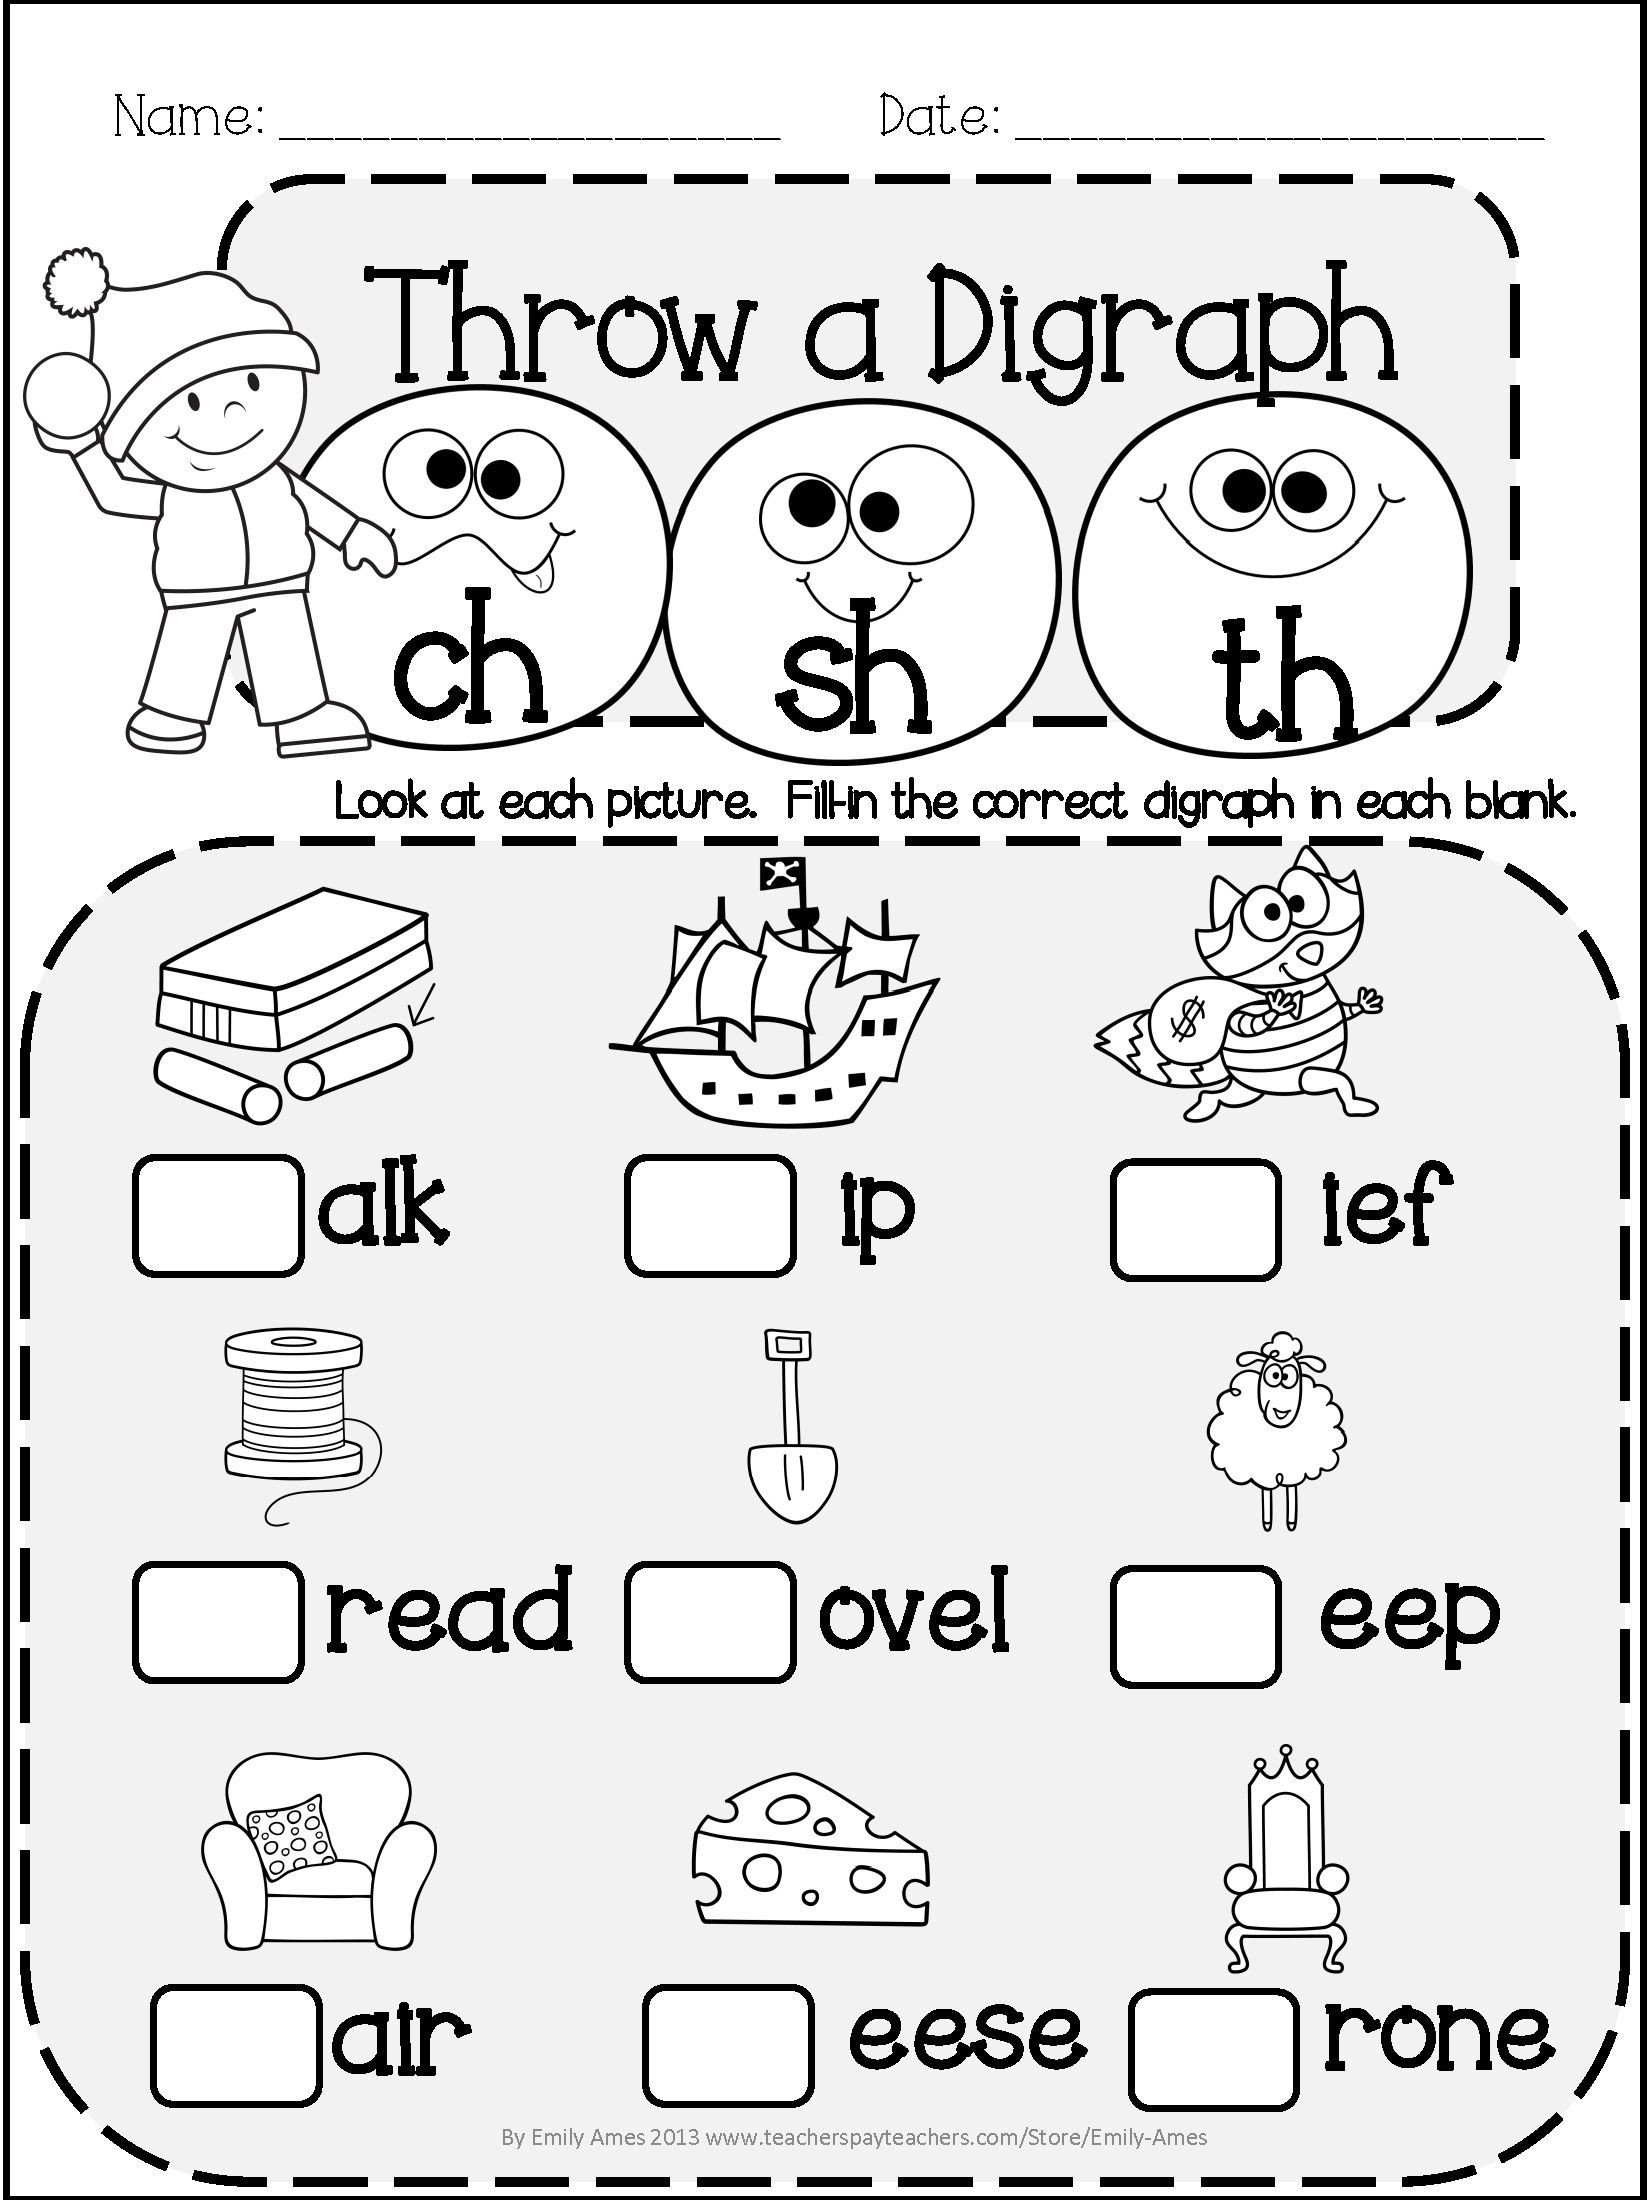 Silent E Worksheets 2nd Grade Winter Literacy Fun Short Vowels Digraphs and Blends Phonics